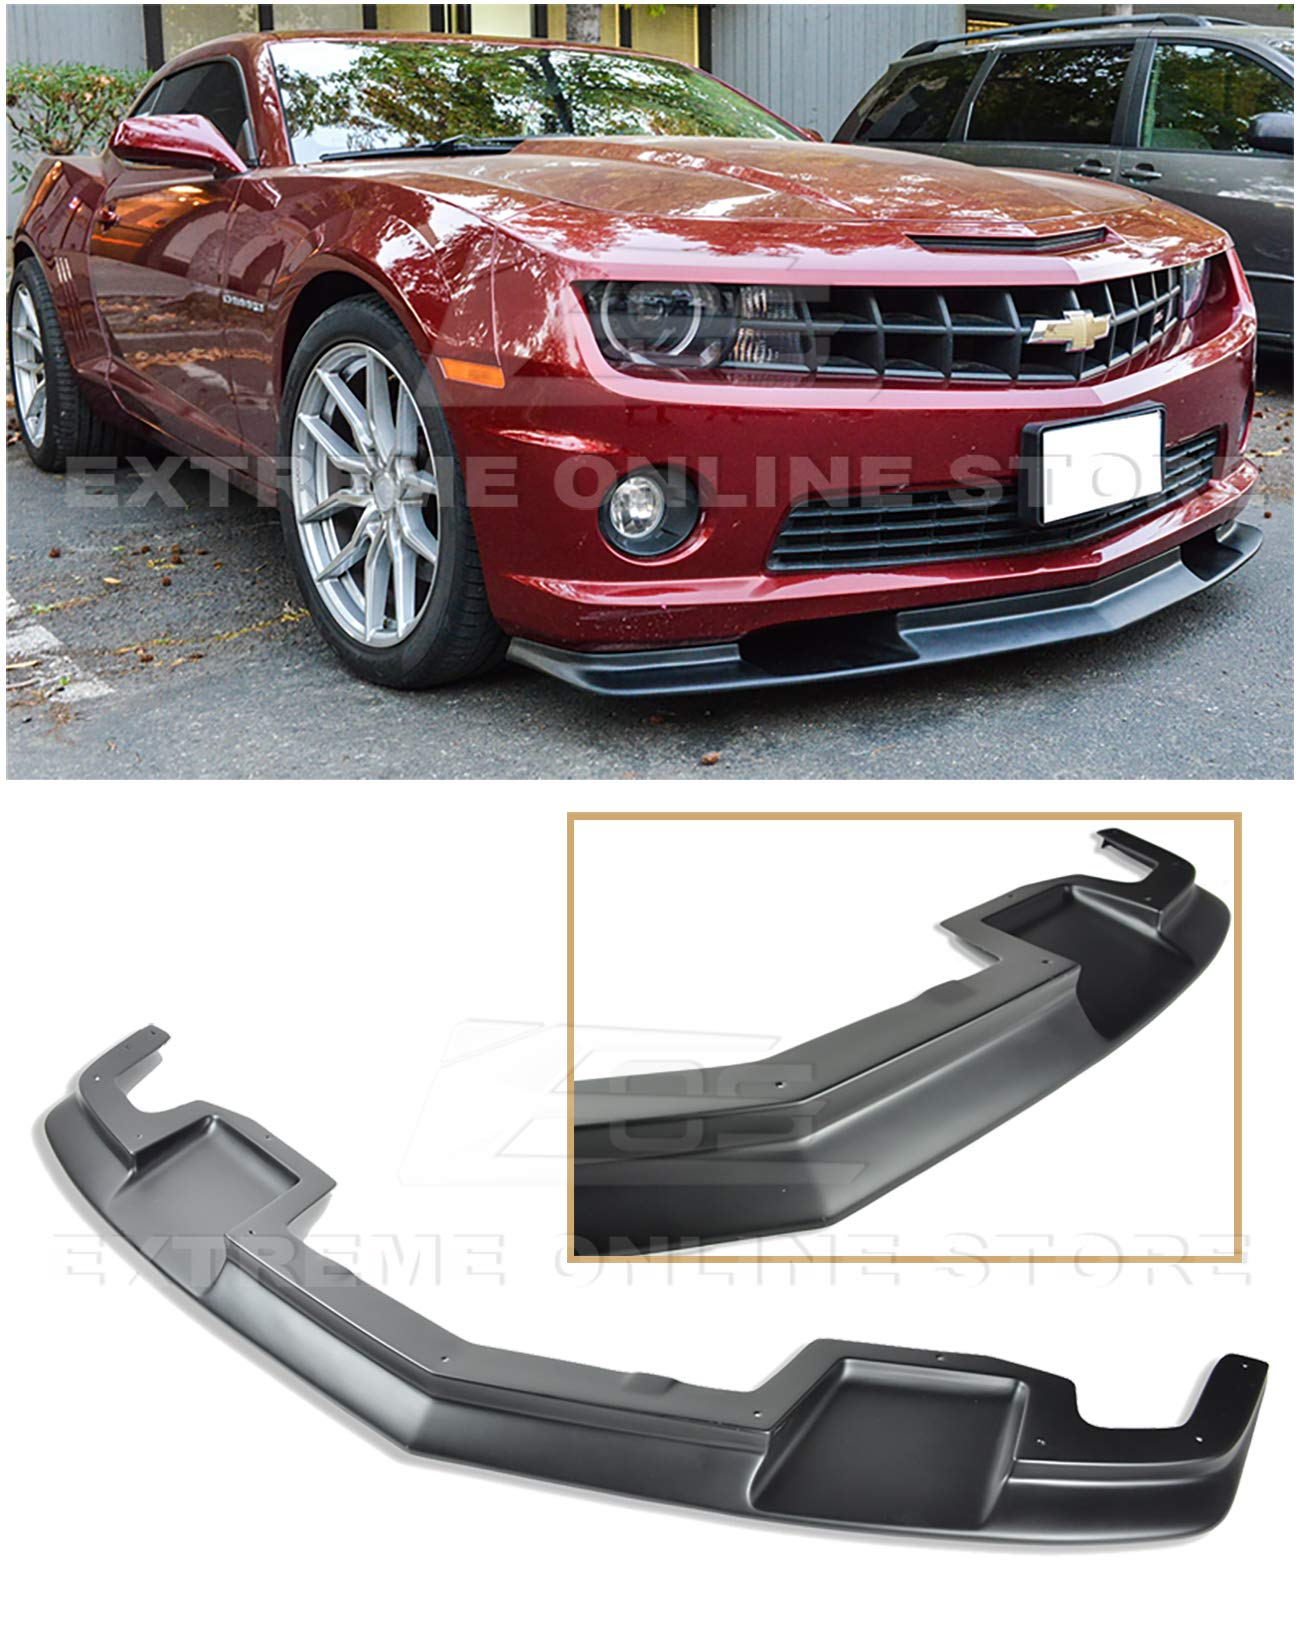 Roush Style ABS Plastic Primer Black 3 Pieces Rear Trunk Lid Spoiler Wing Lip Extreme Online Store Replacement for 2005-2009 Ford Mustang S197